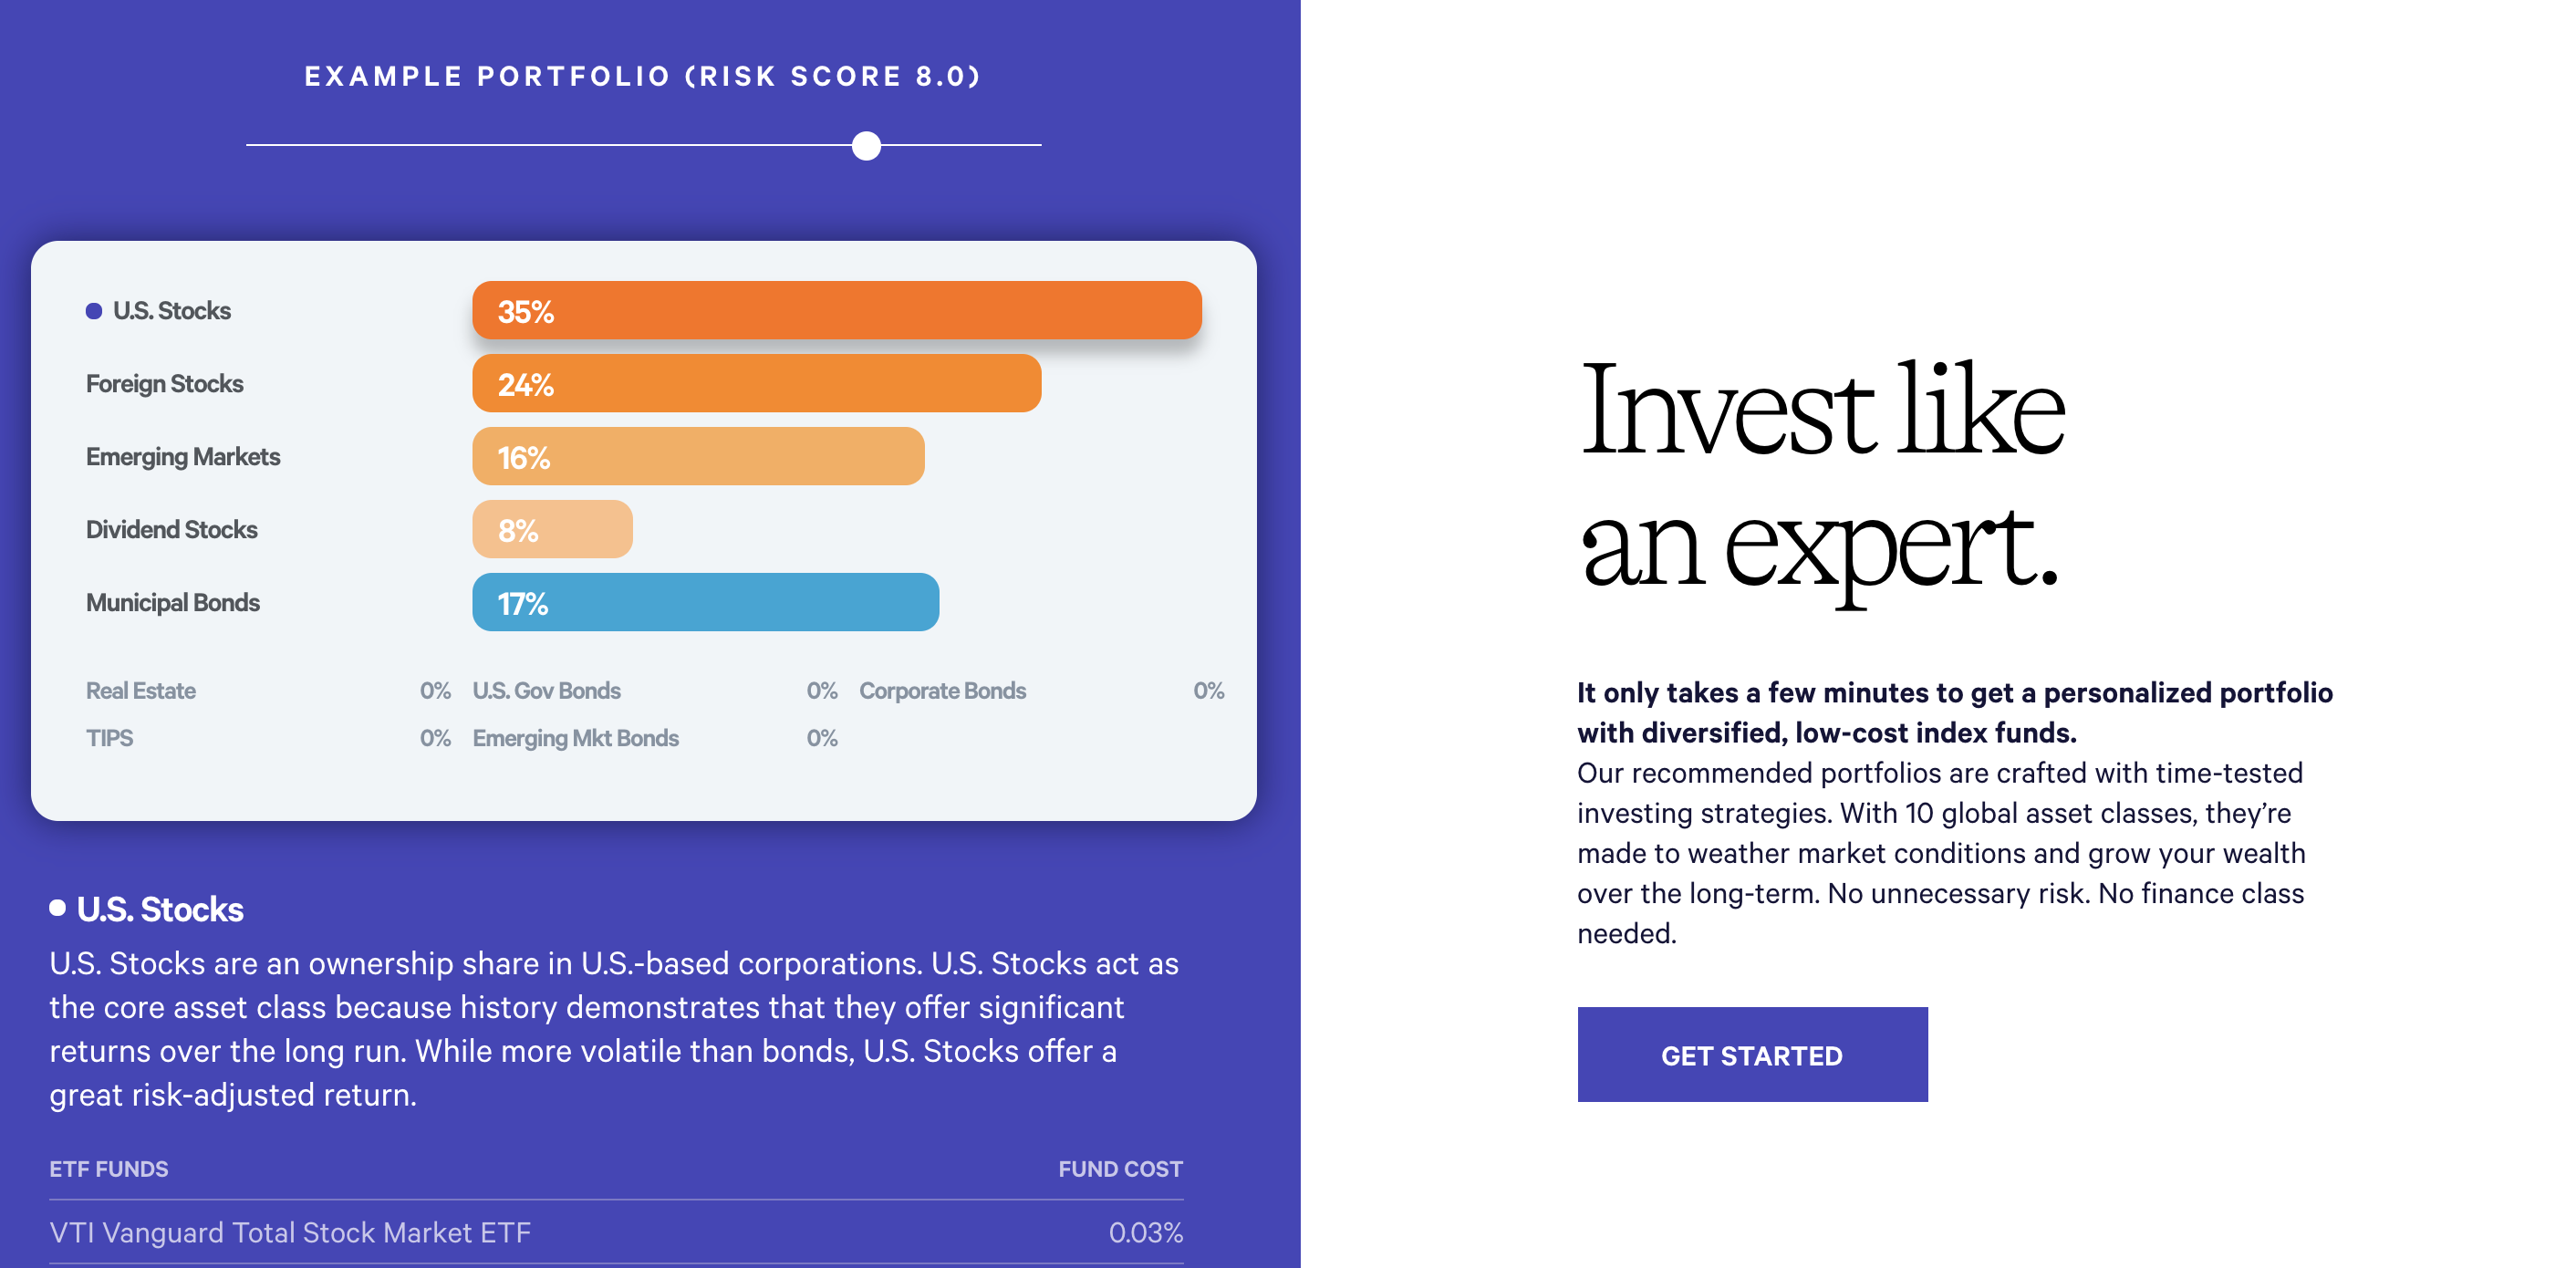 The core philosophy of Wealthfront is that, with the right technology, anyone can become an investor. With their personalized portfolios, your money can grow the way you want it to without more risk than you're willing to take on. Image from wealthfront.com.